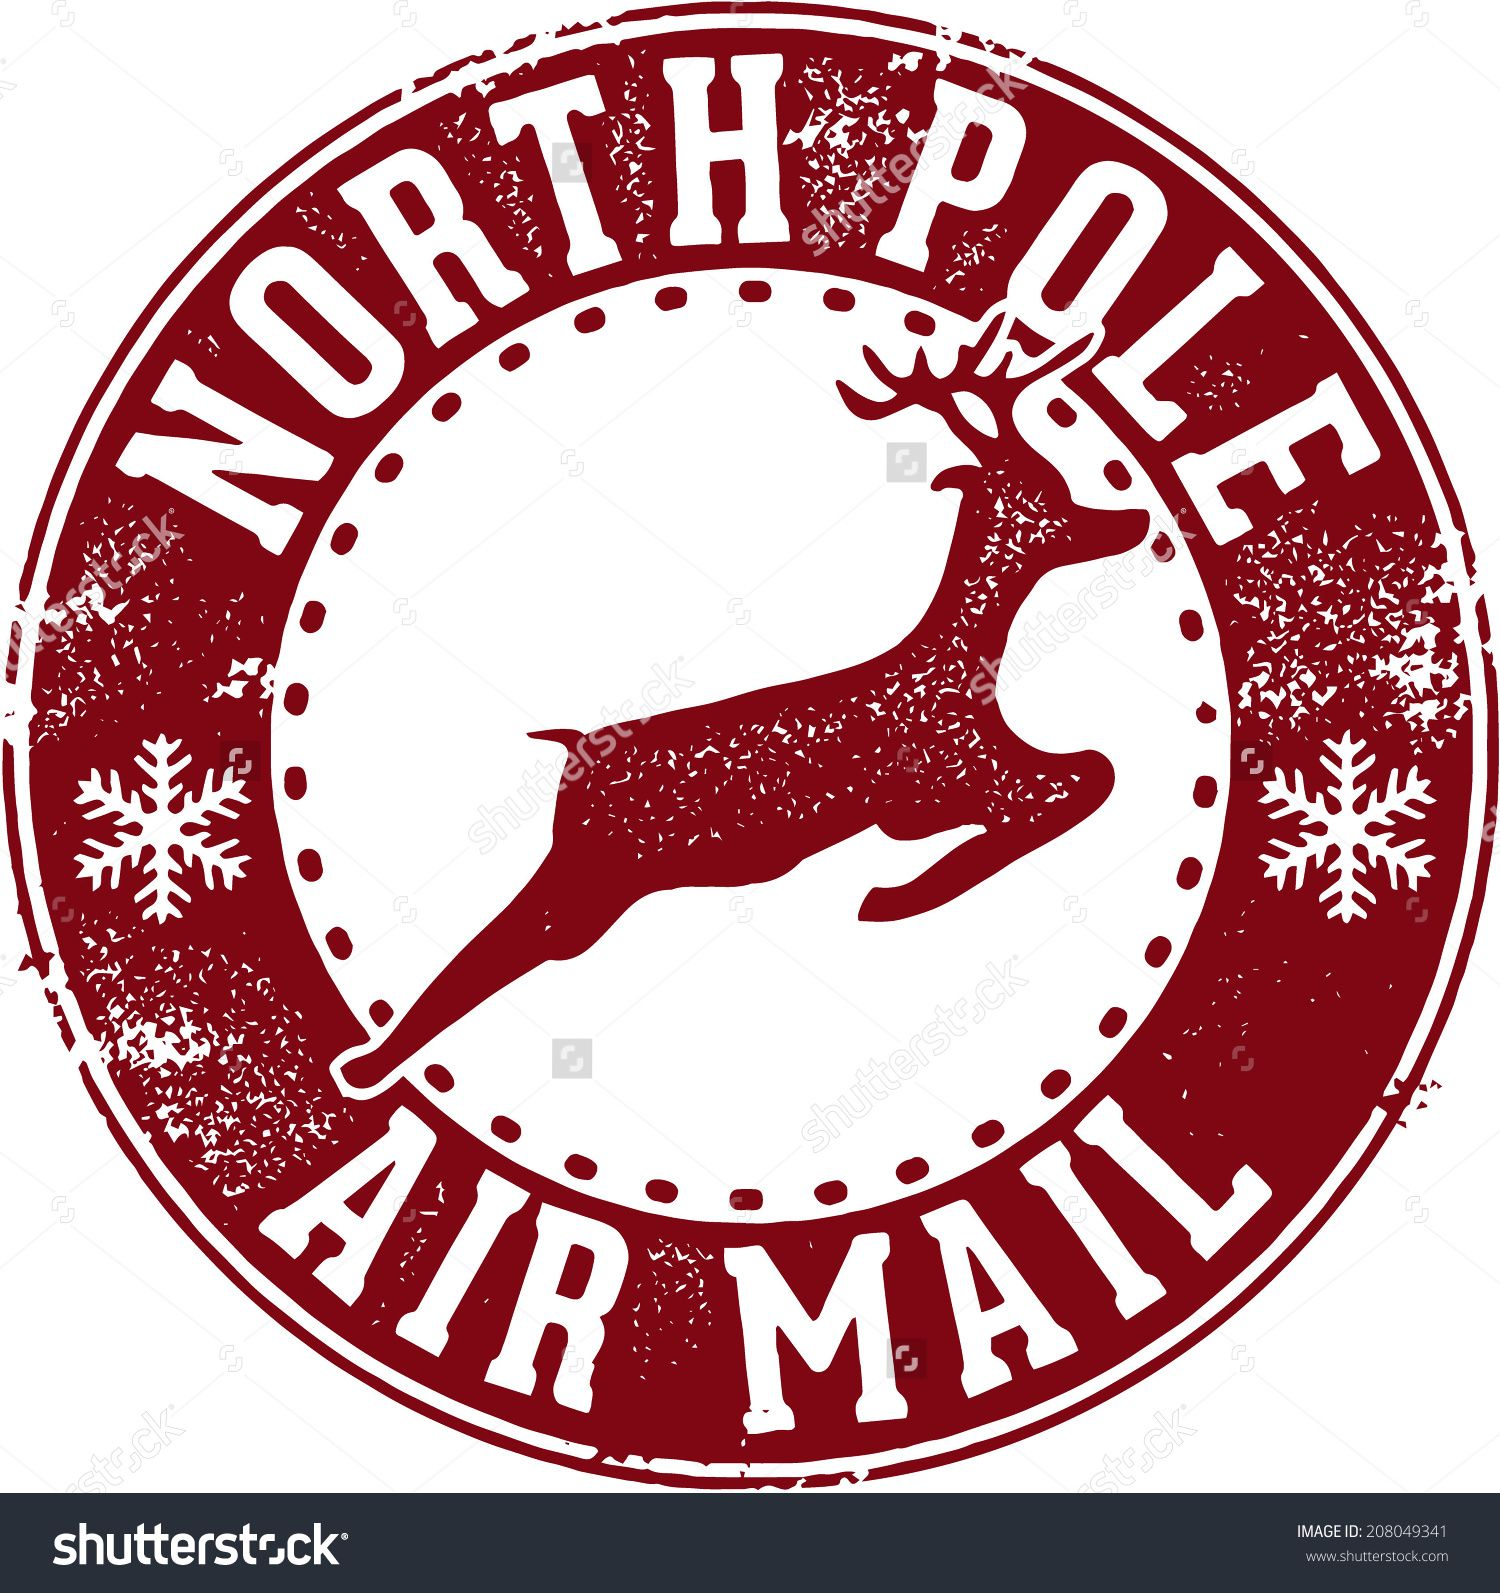 North Pole Air Mail Christmas Santa Stamp Stock Vector.